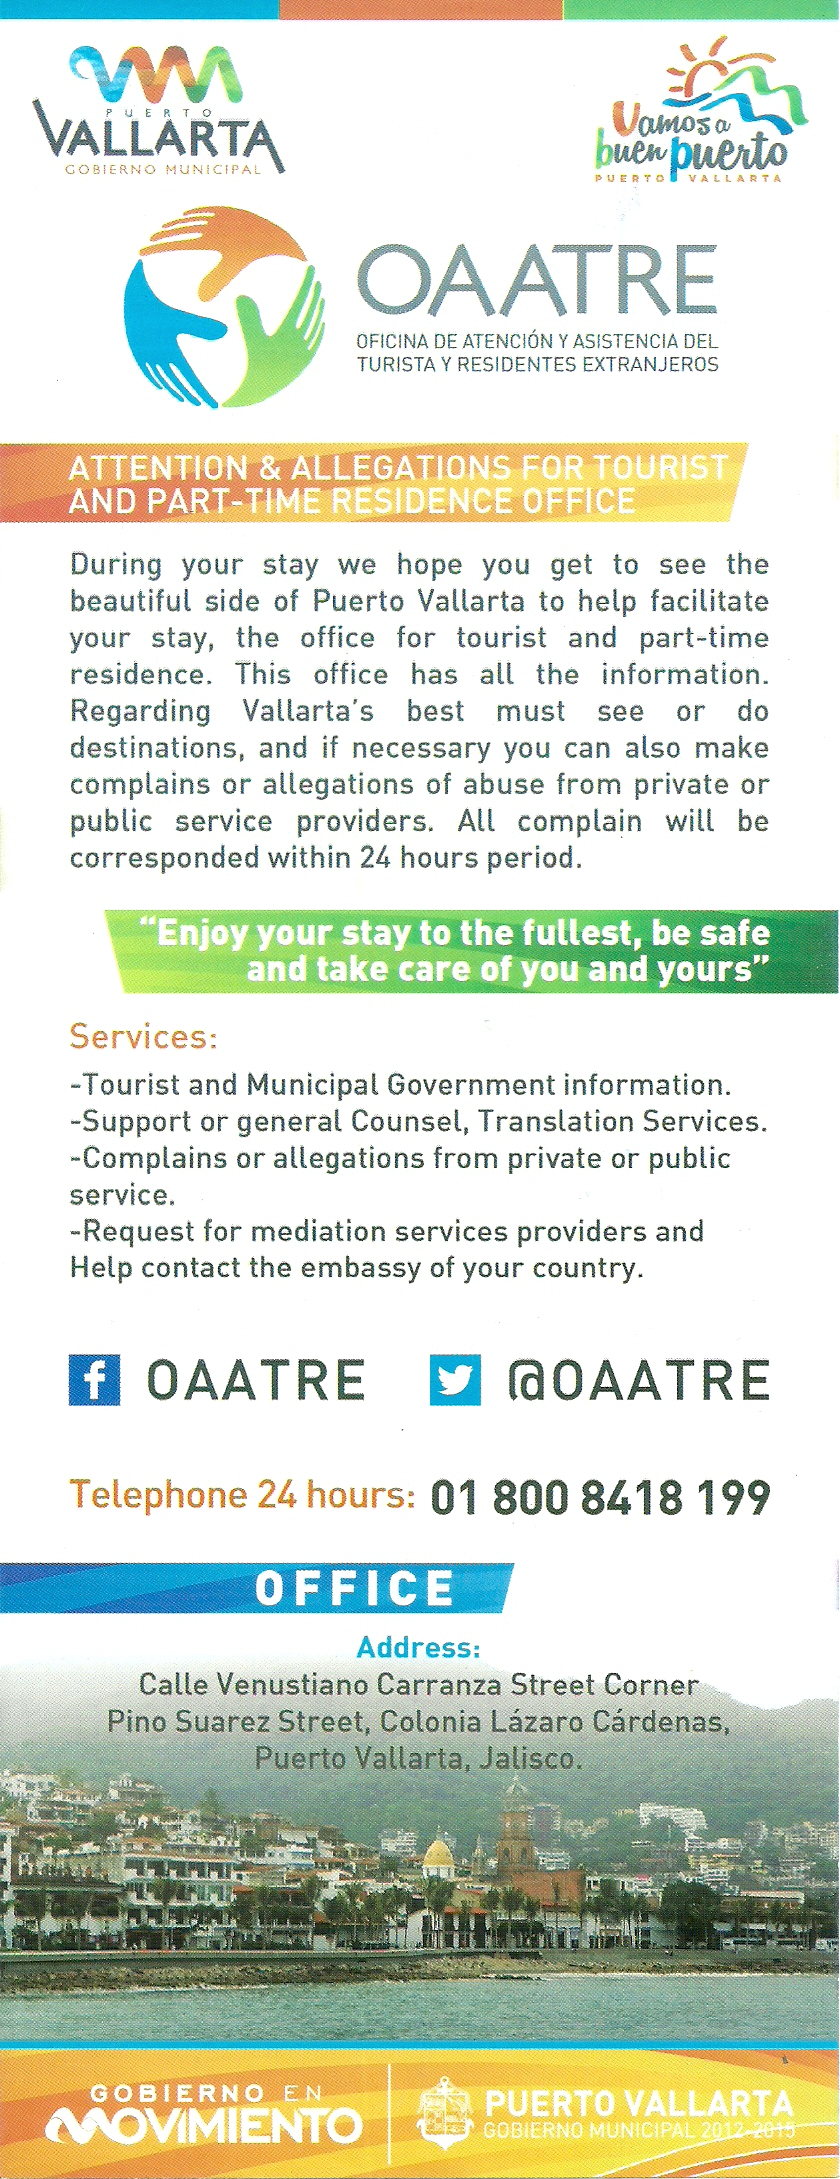 OAATRE - Free Legal Help for Tourists in Puerto Vallarta, Mexico